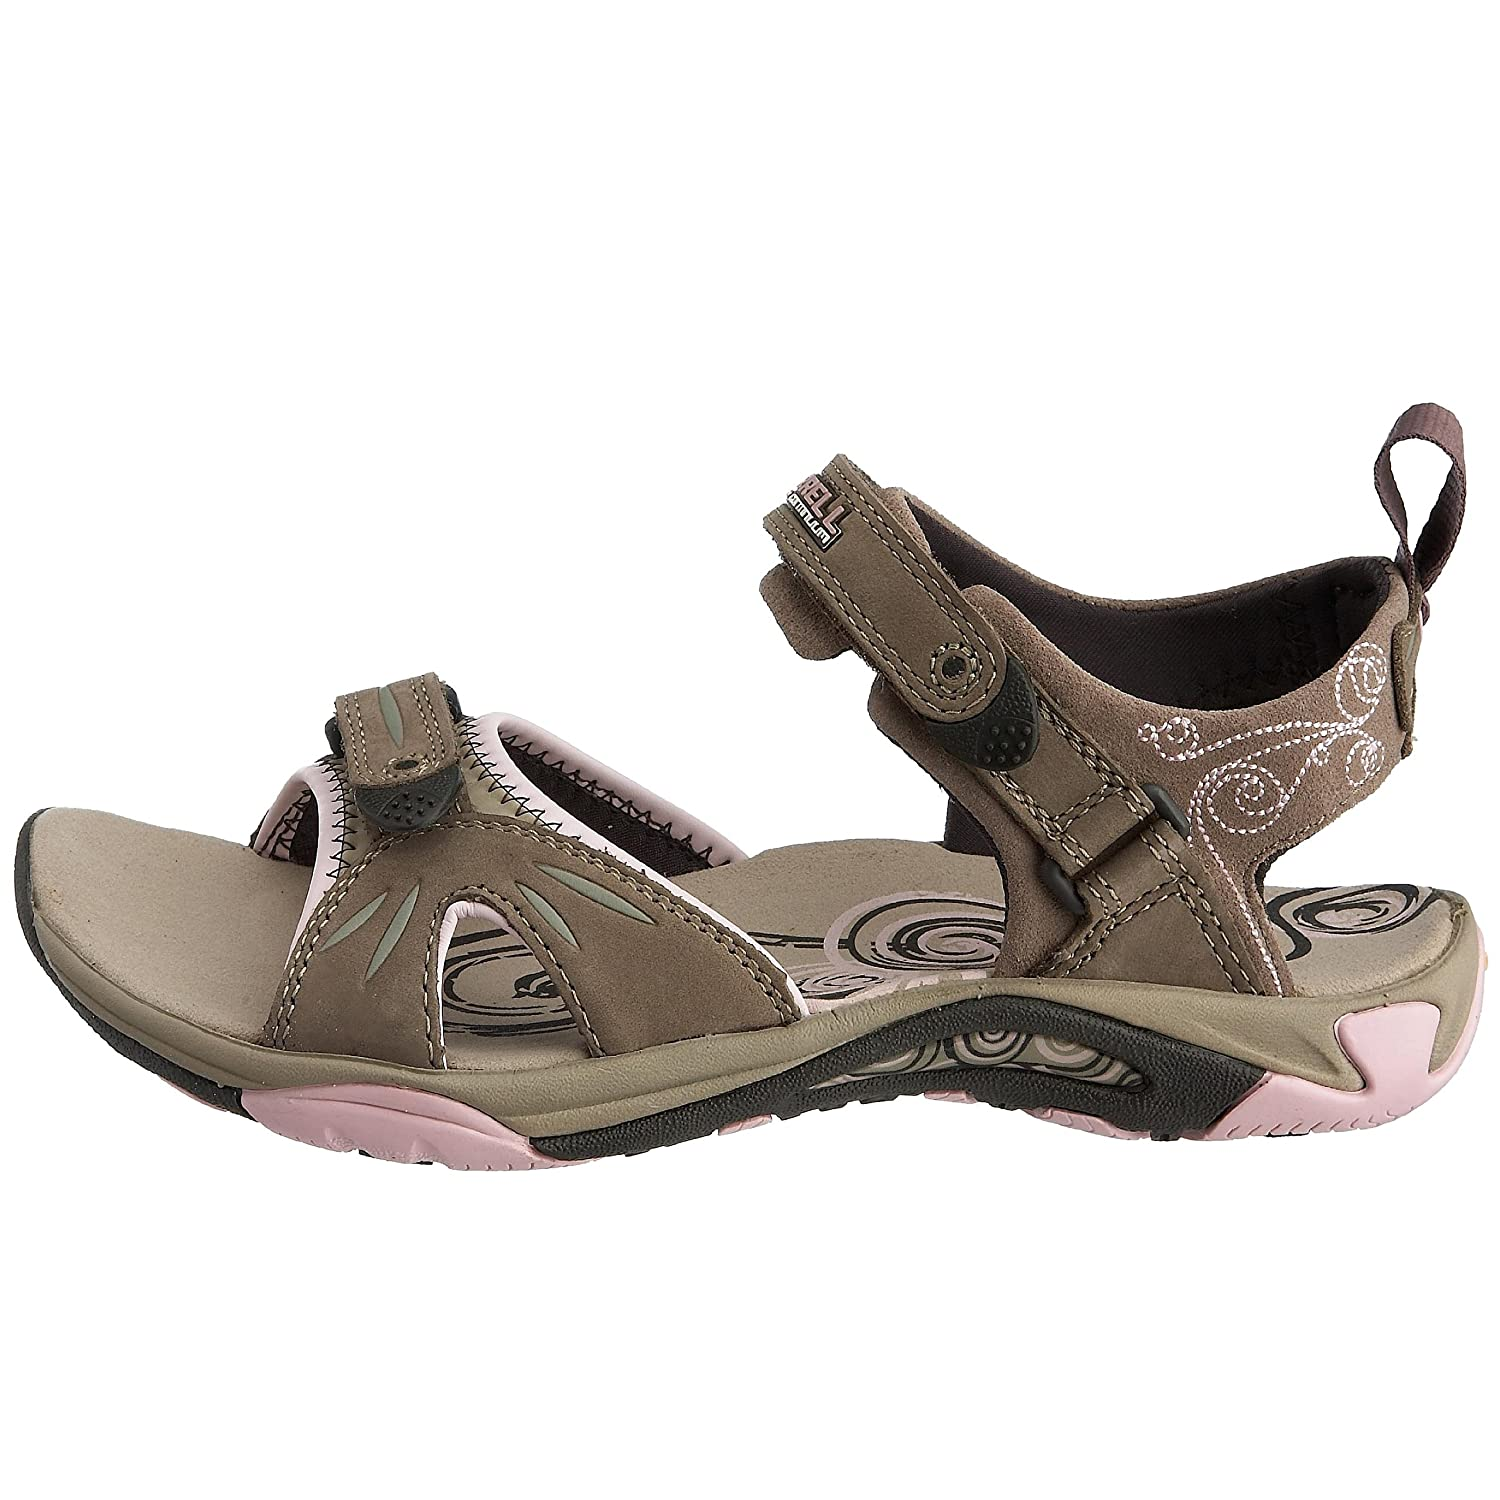 350f7ab07771 Merrell Women s Siren Strap Fashion Sandals Brown Pink 9 UK  Amazon.co.uk   Shoes   Bags